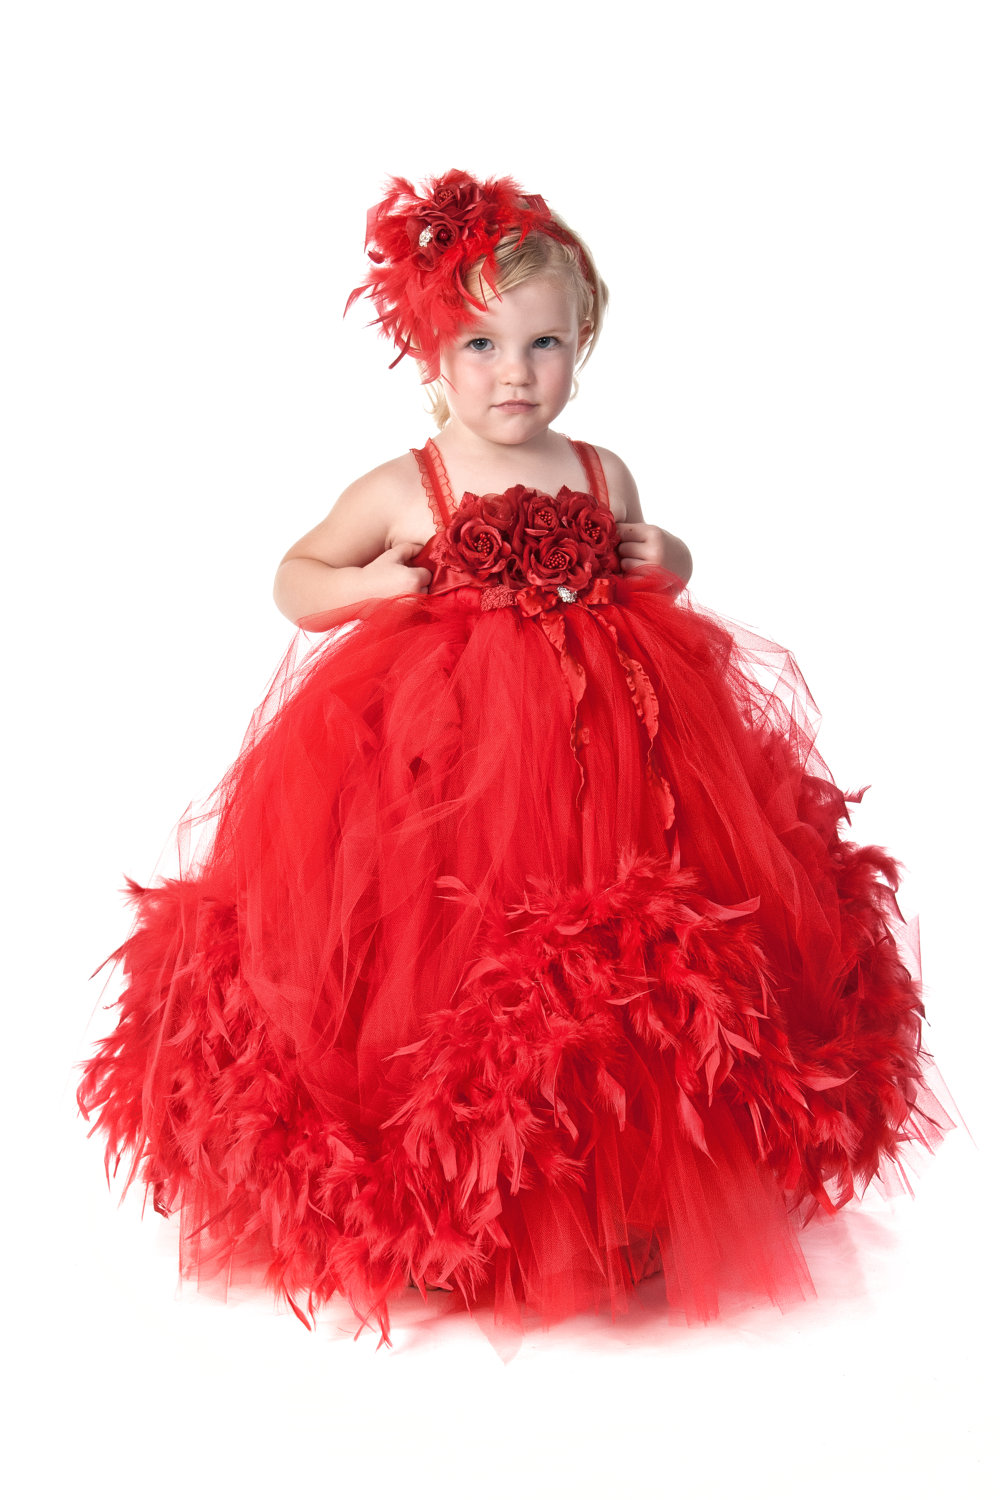 Tutu Dress Picture Collection Dressed Up Girl